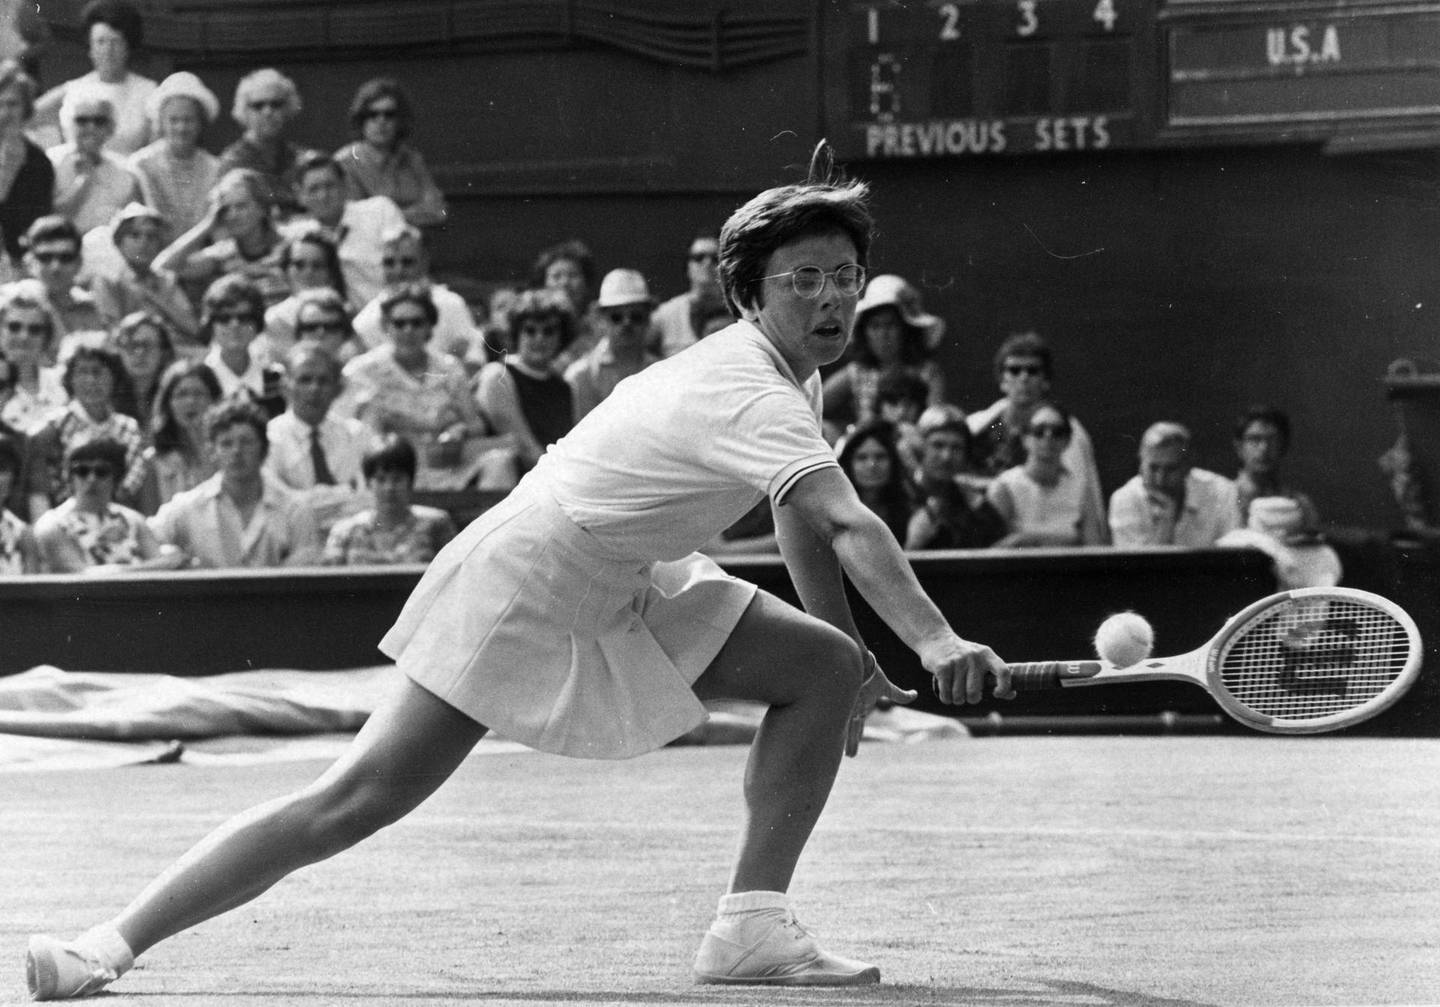 14th June 1970:  American tennis player Billie Jean King in action against Ann Jones of Great Britain during their Wightman Cup match at Wimbledon.  (Photo by Ted West/Central Press/Getty Images)